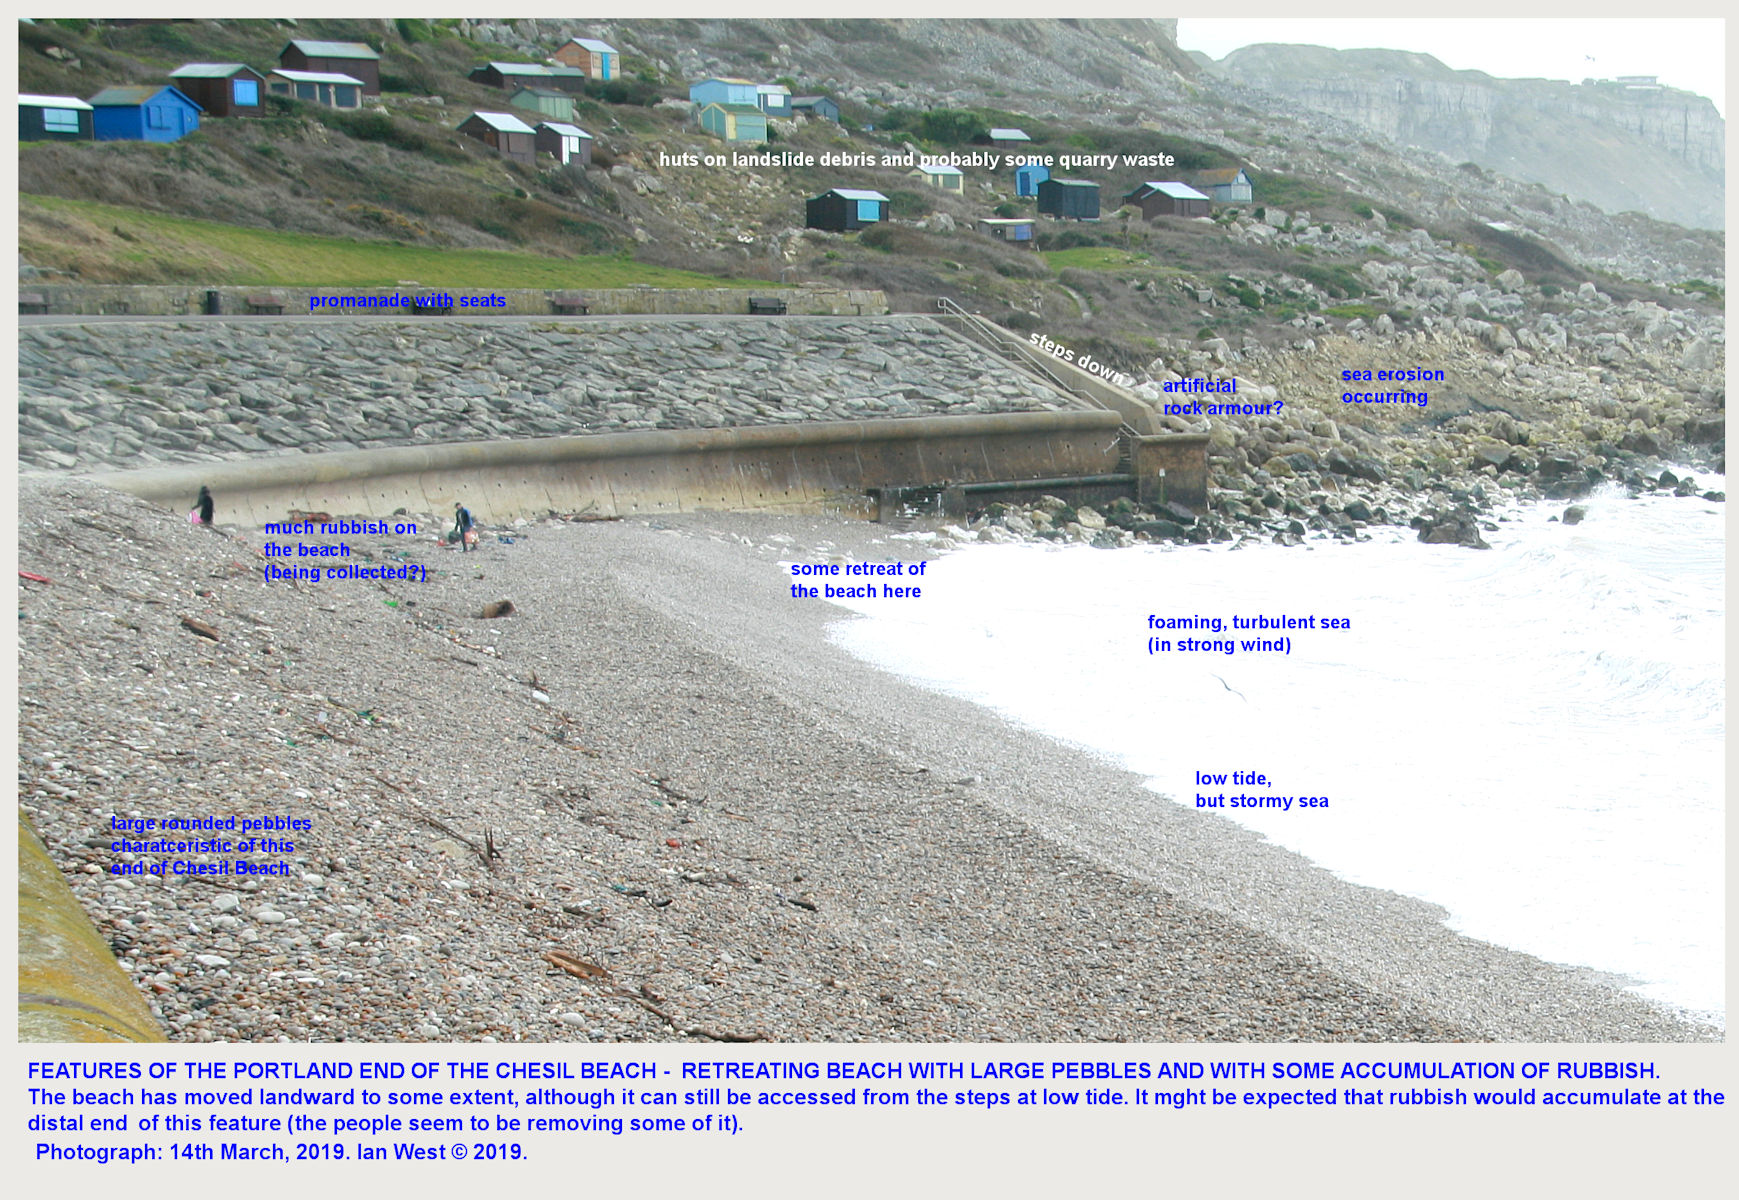 The Isle-of-Portland end of the Chesil Beach, which has retreated landward to a limited extent, and, not surprisingly, tends to accumulate drifted rubbish